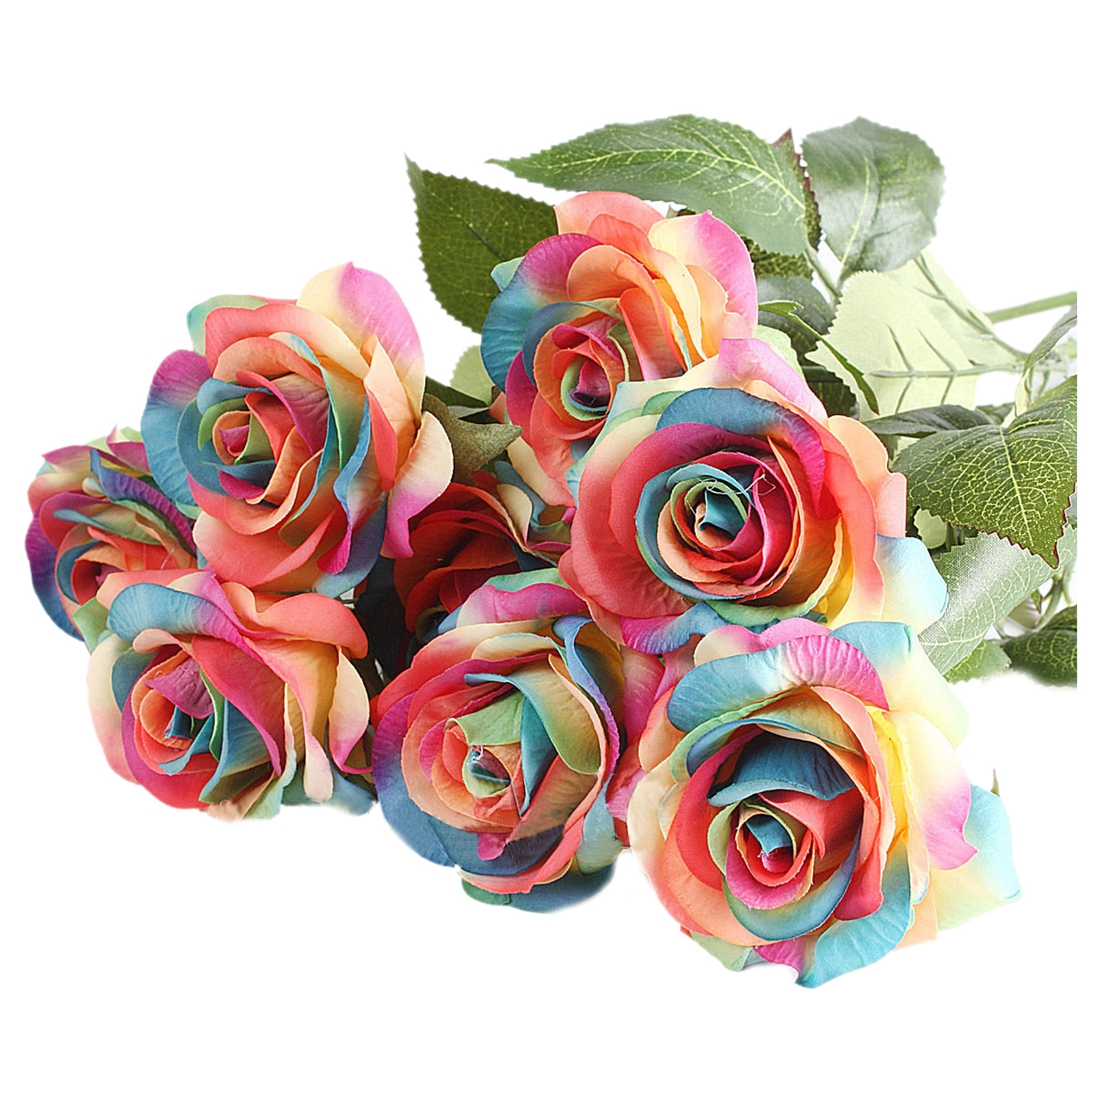 Compare prices on silk rainbow roses online shopping buy for Where can i buy rainbow roses